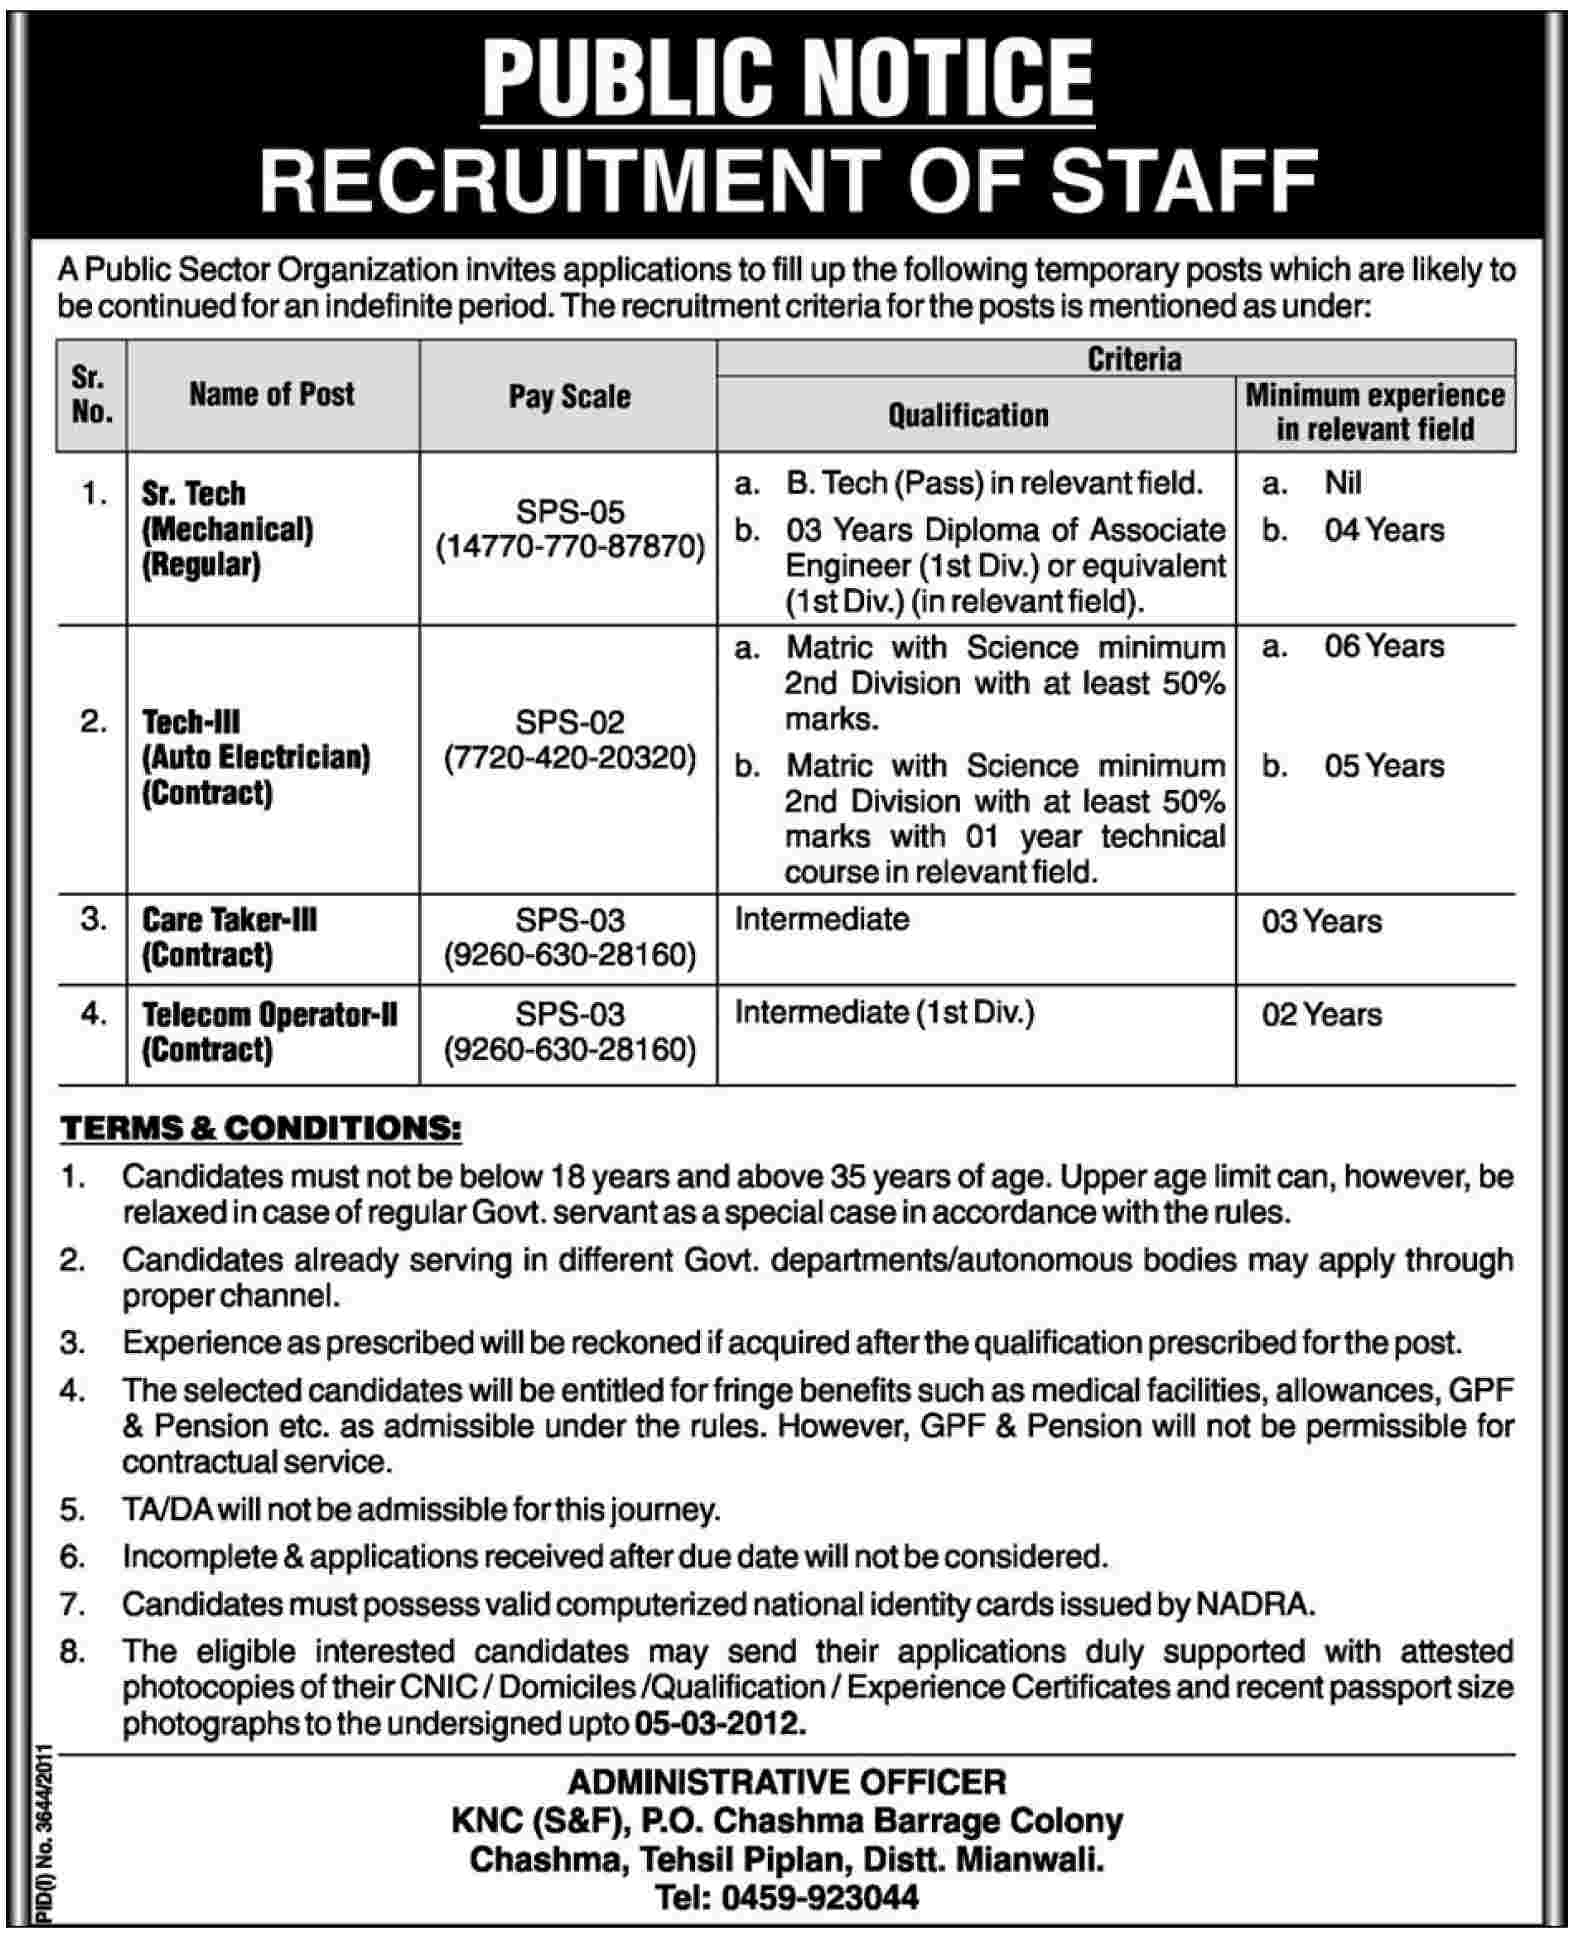 Staff Required by a Public Sector Organization